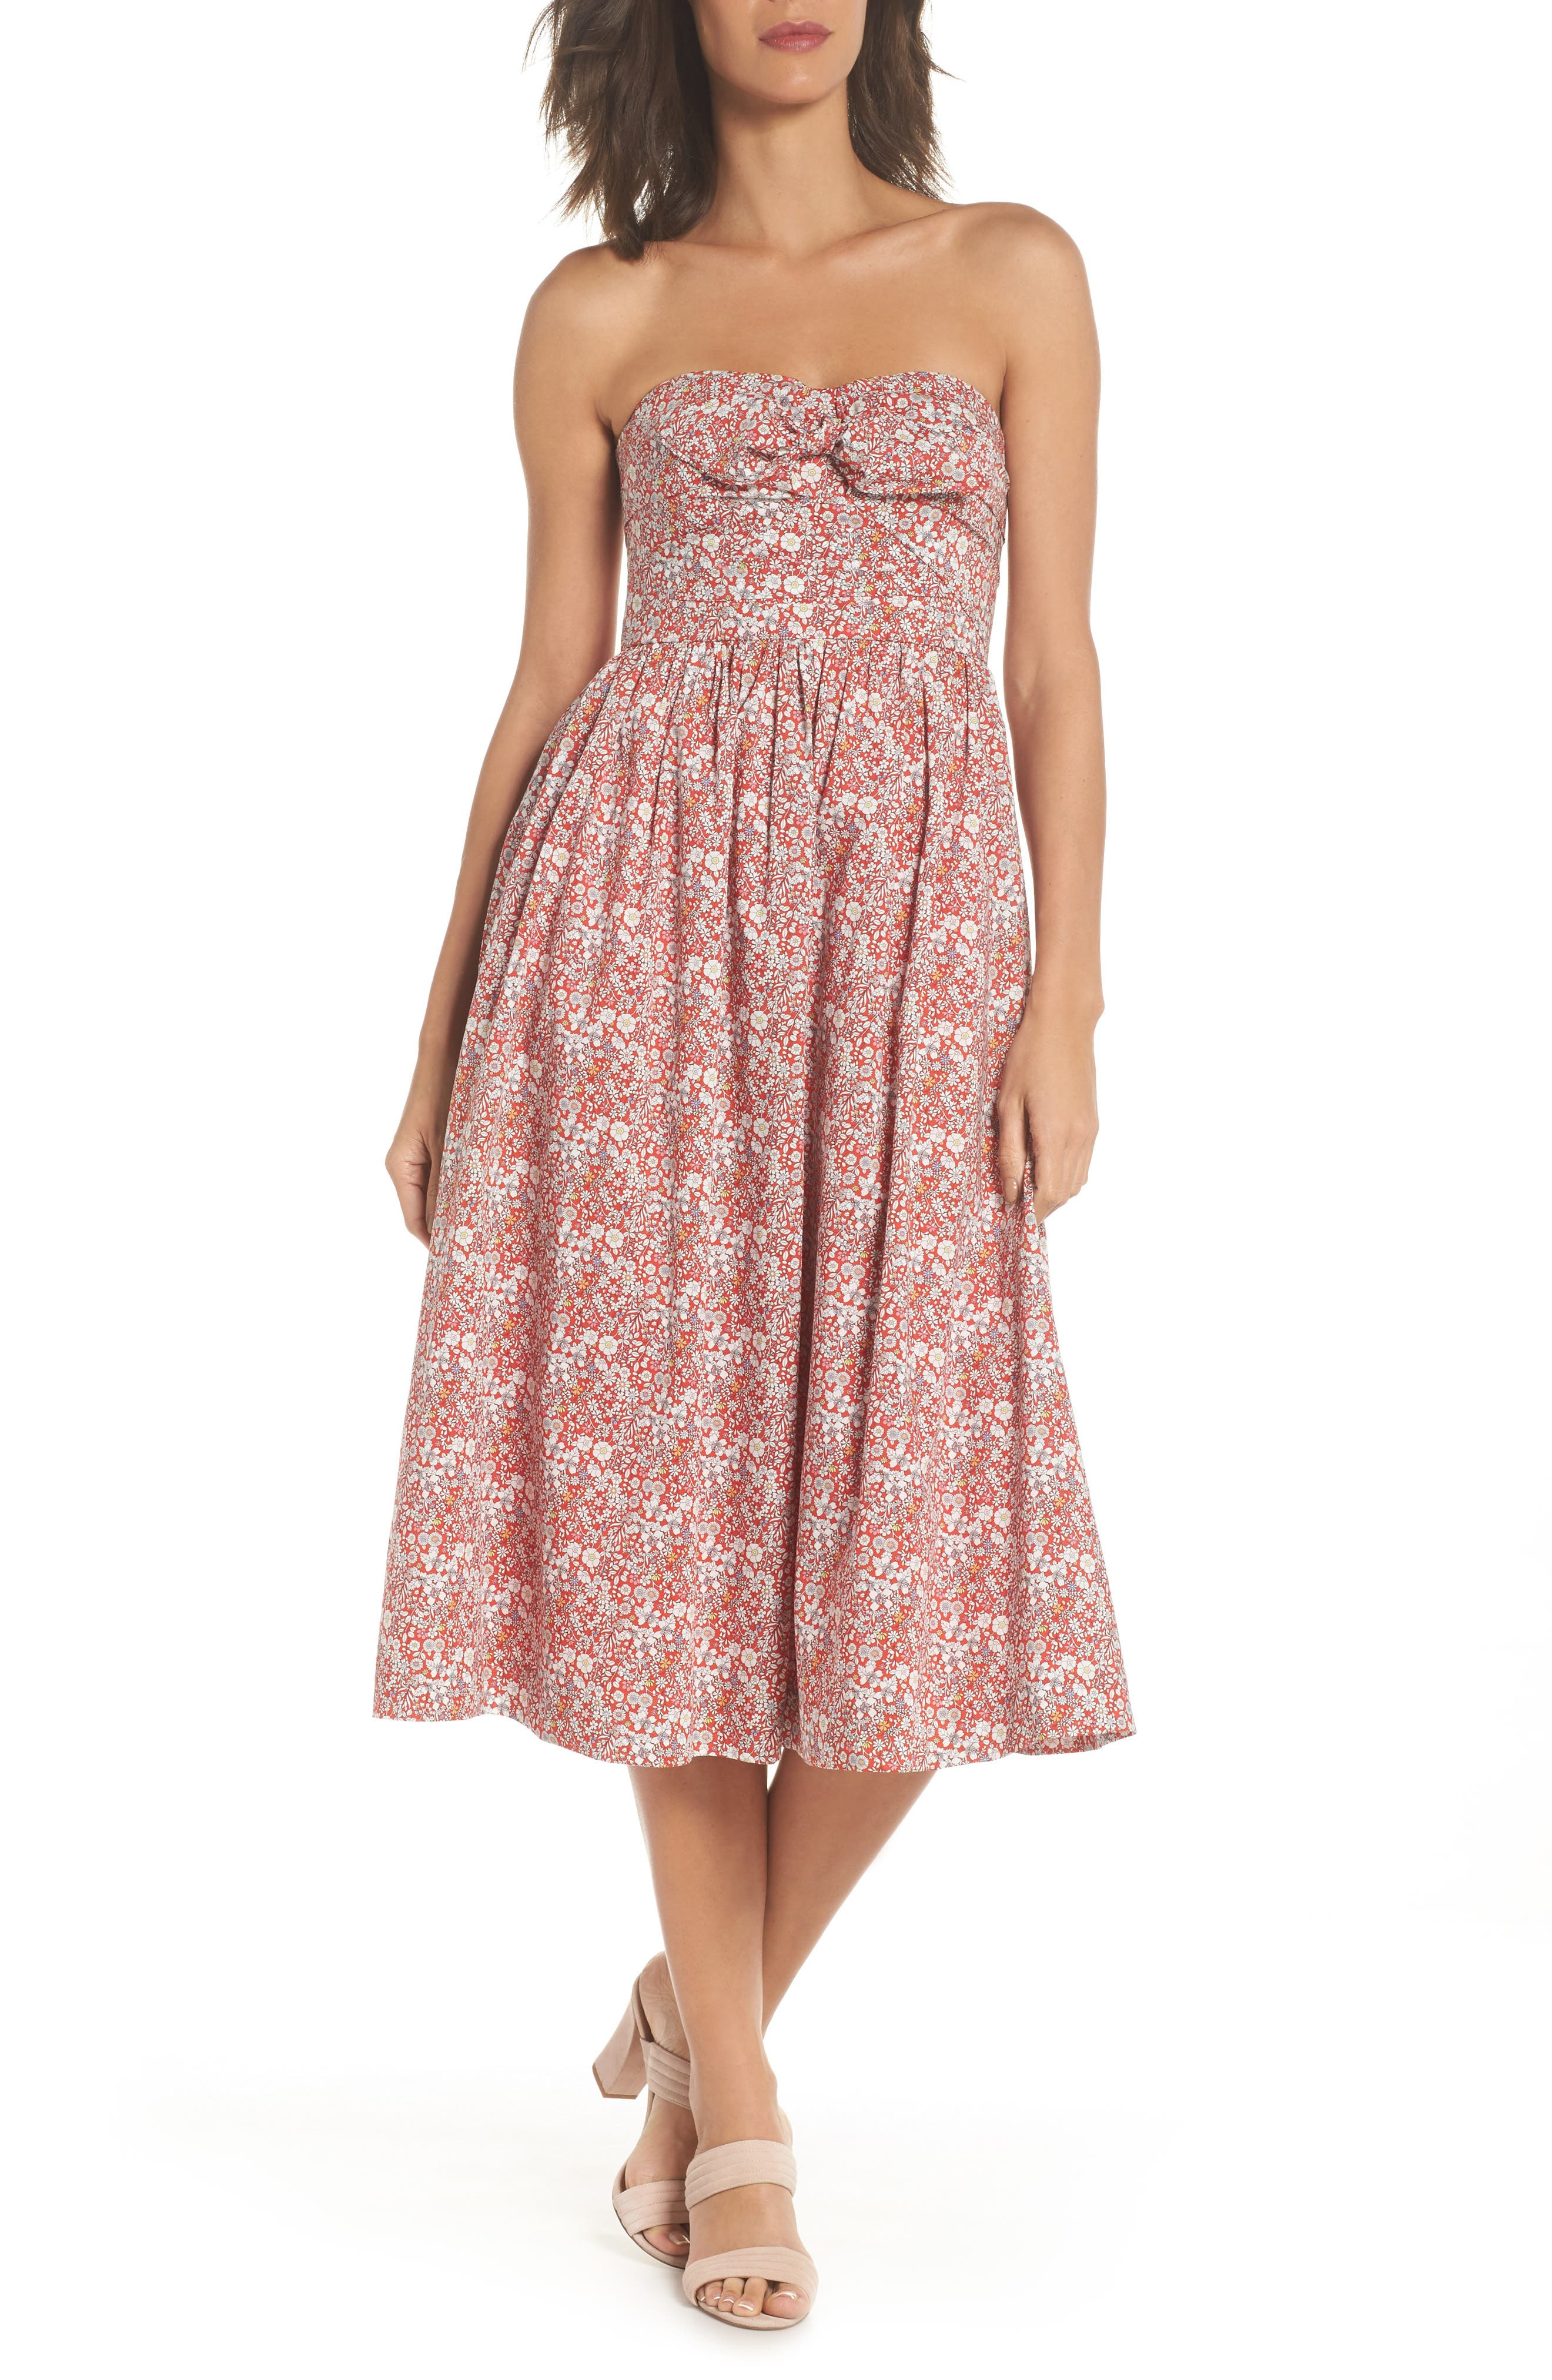 Liberty Tie Front Strapless Dress,                             Alternate thumbnail 6, color,                             600